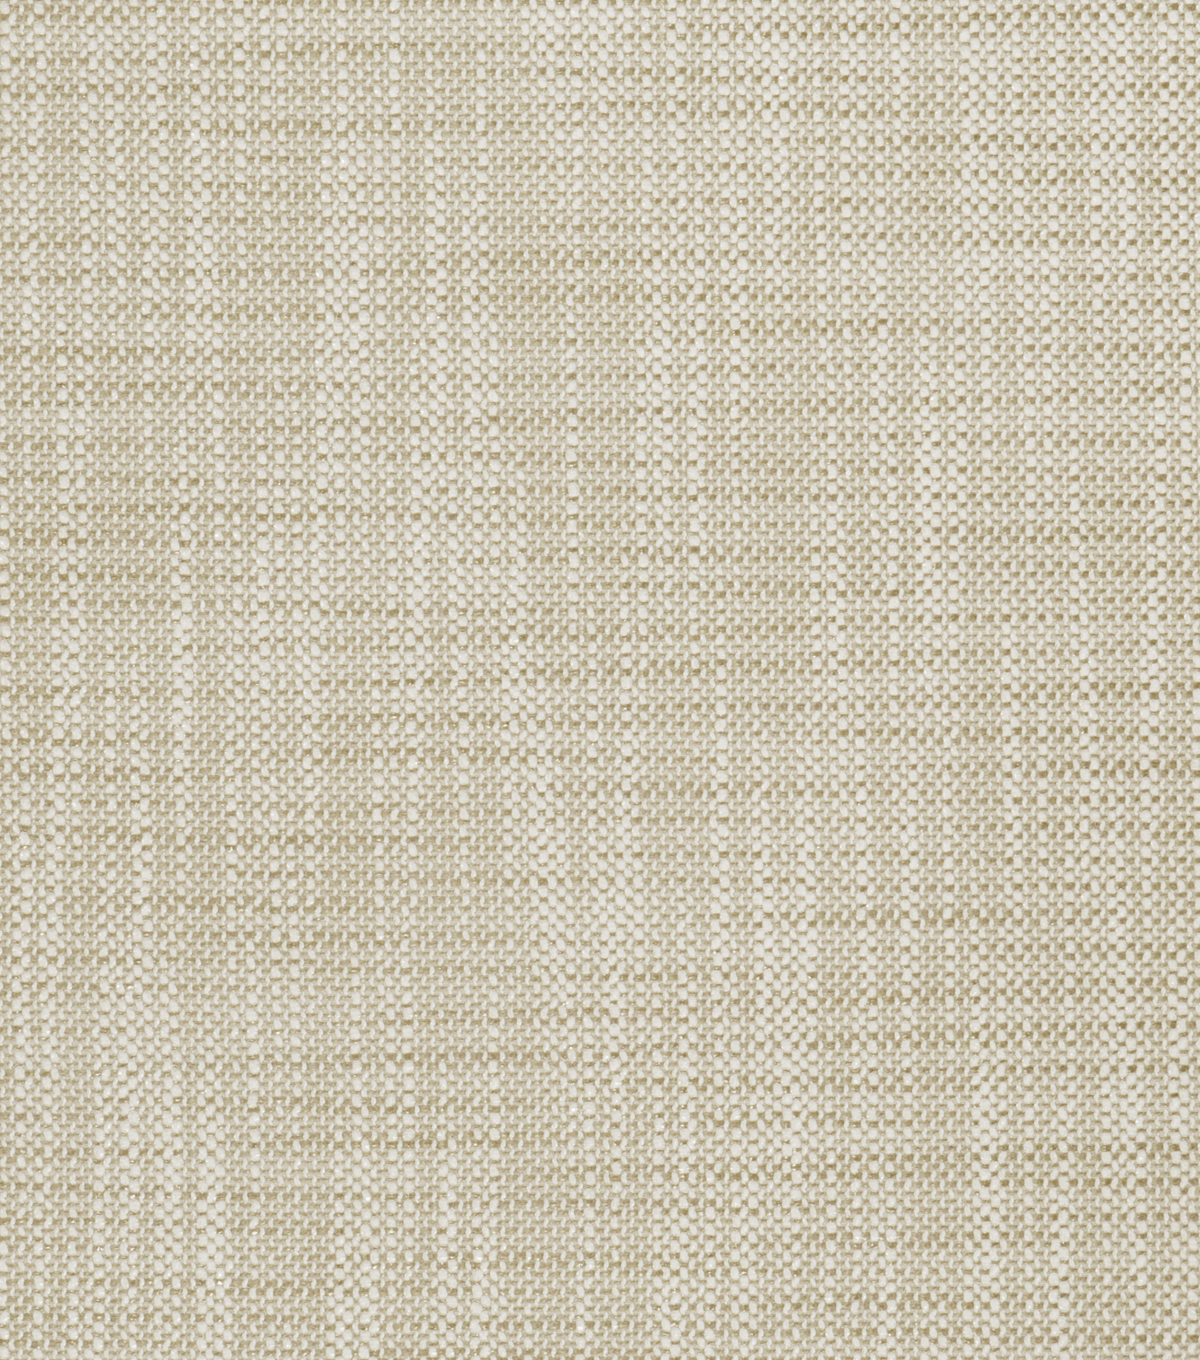 Home Decor 8x8 Fabric Swatch-Eaton Square Countdown Oyster